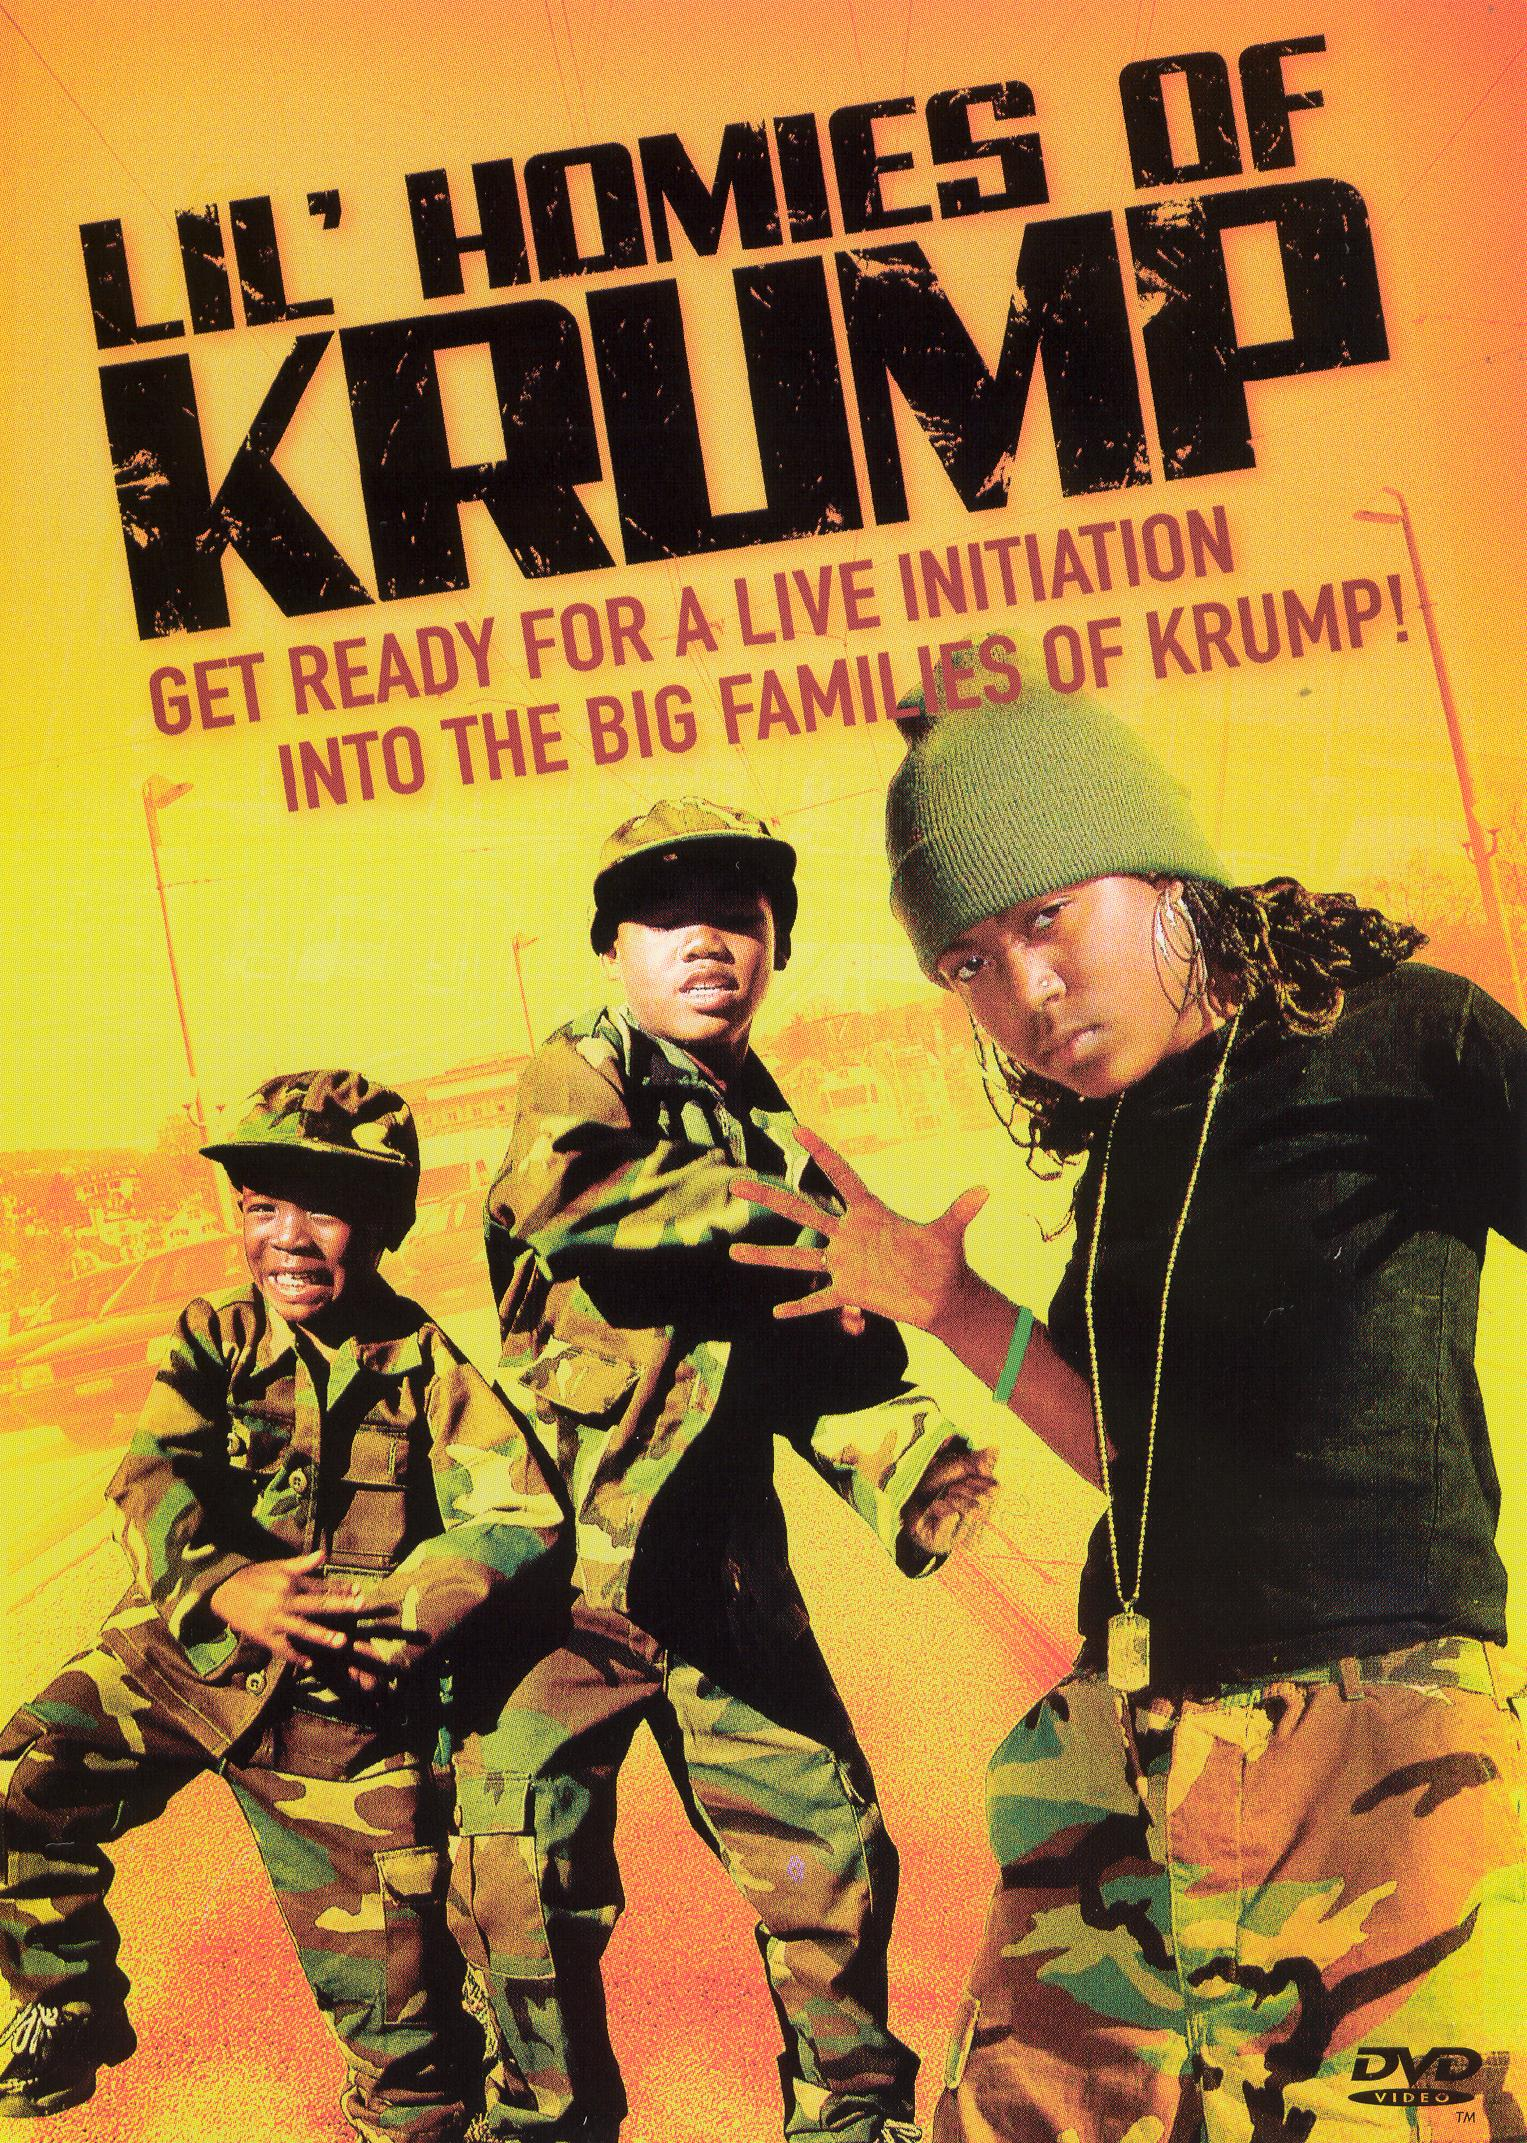 Lil' Homies of Krump